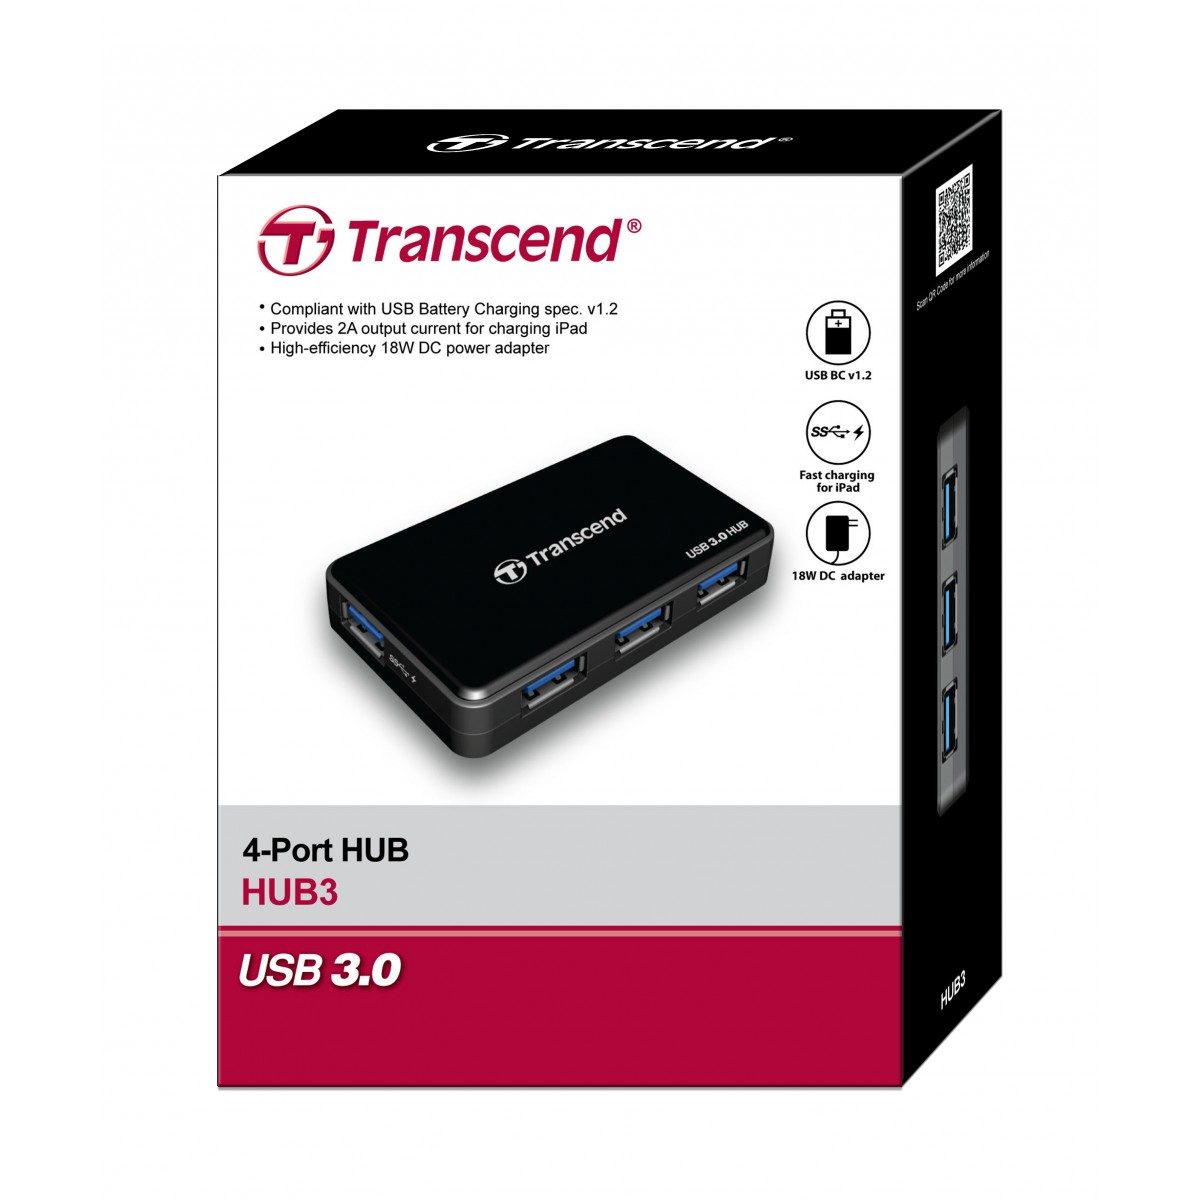 4 PORT USB 3.0 HUB TRANSCEND HUB3